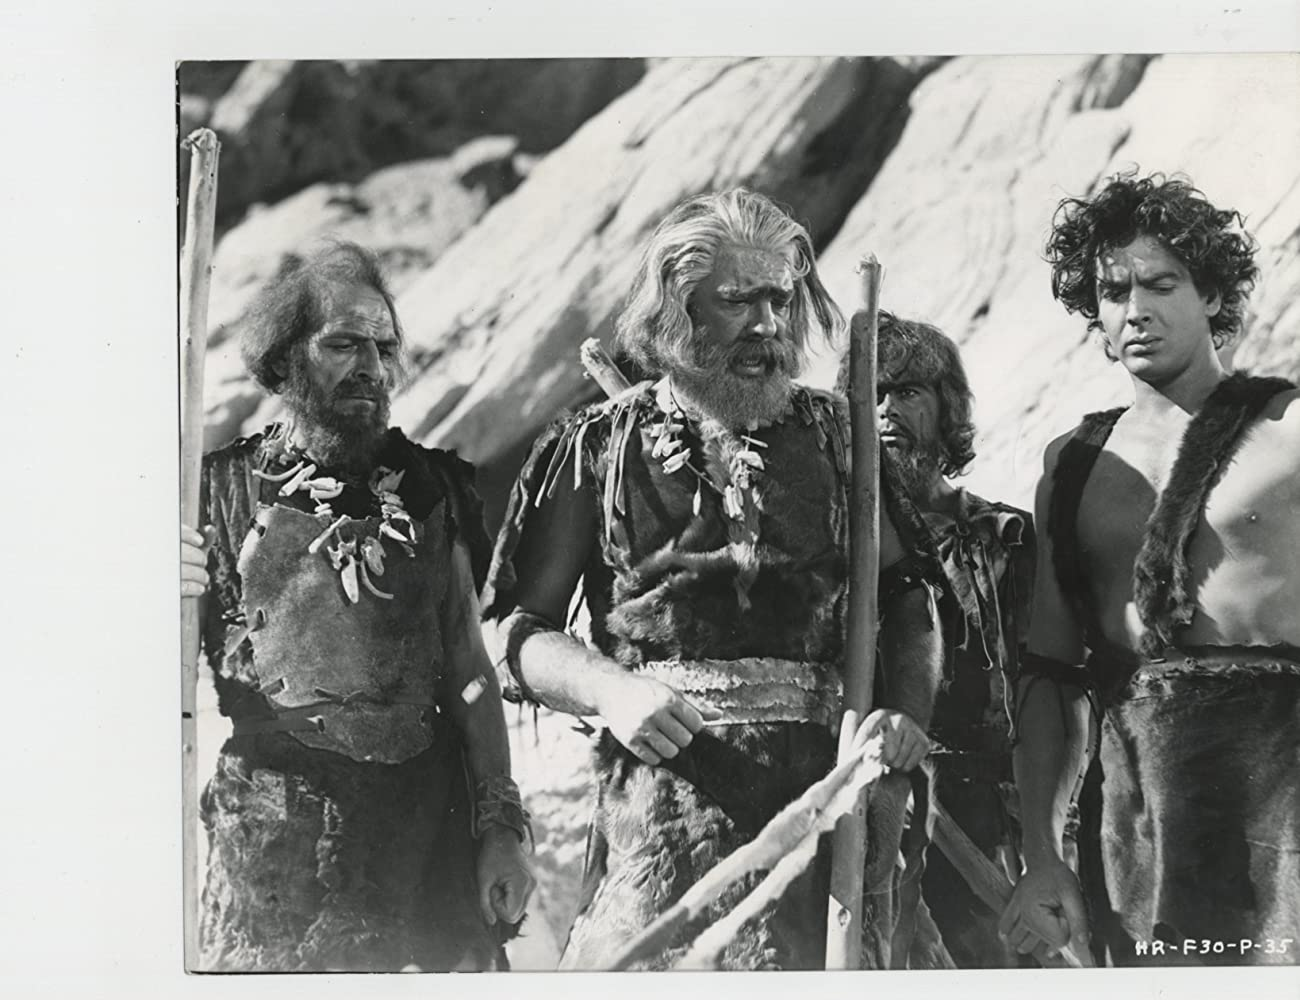 Lon Chaney Jr., Victor Mature, Edgar Edwards, and Harry Wilson in One Million B.C. (1940)